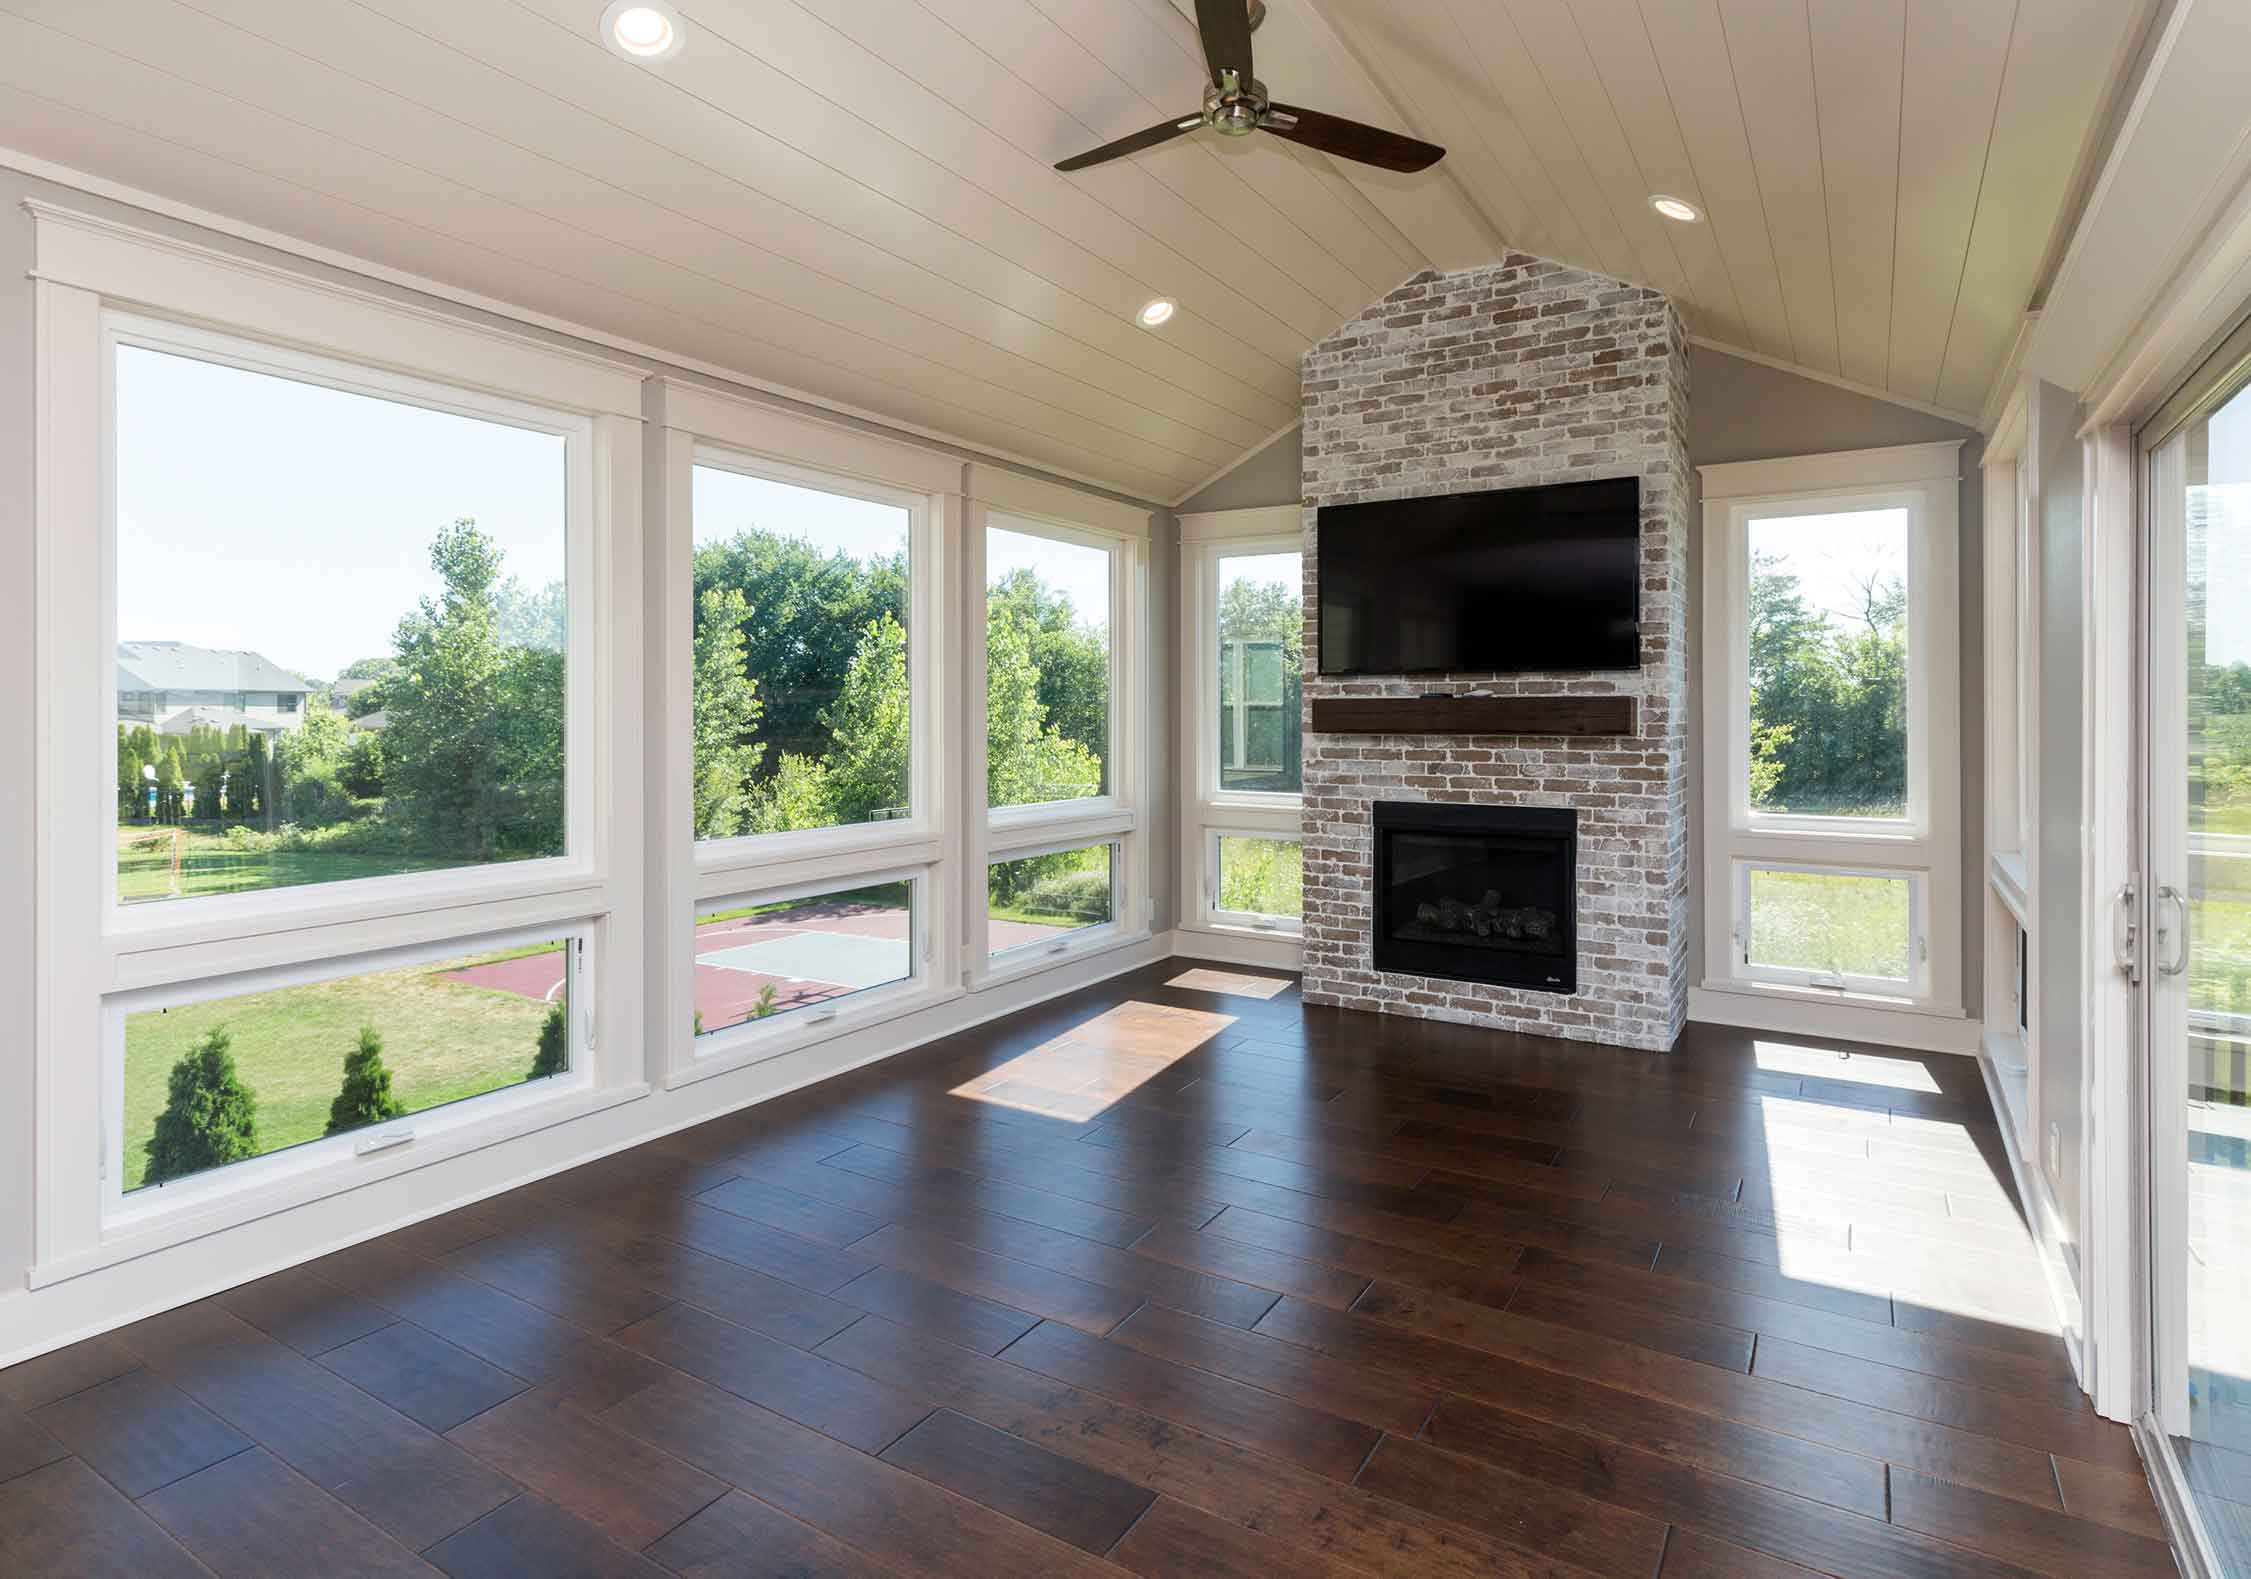 Get Home Renovation and Remodeling Ideas